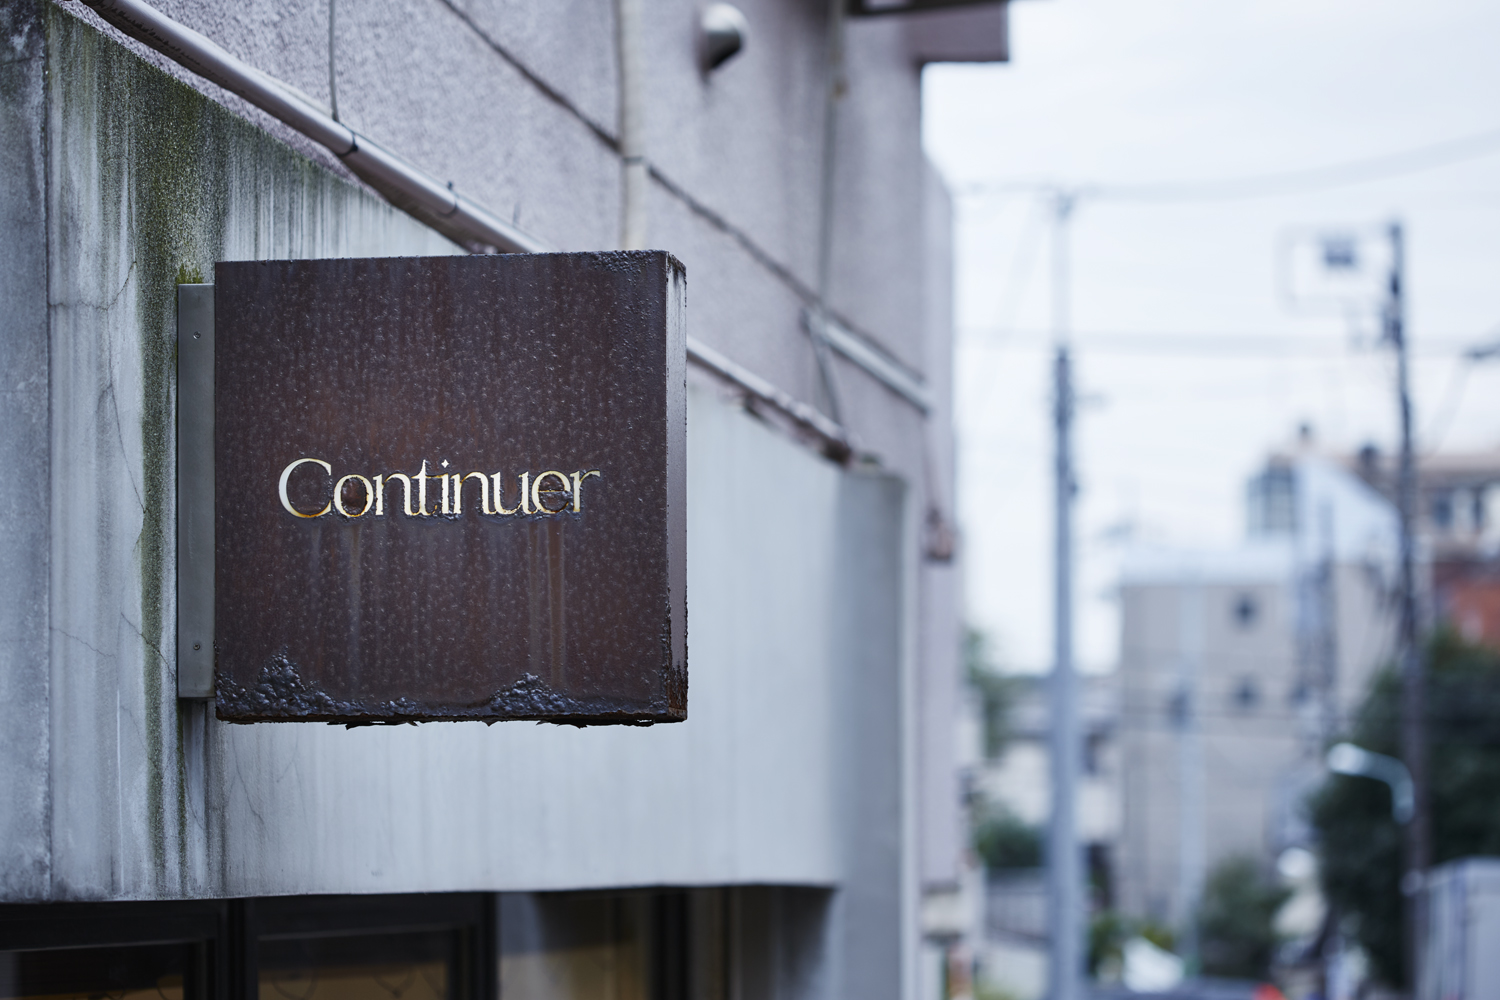 Continuer|恵比寿 9.30(木)臨時休業のご案内